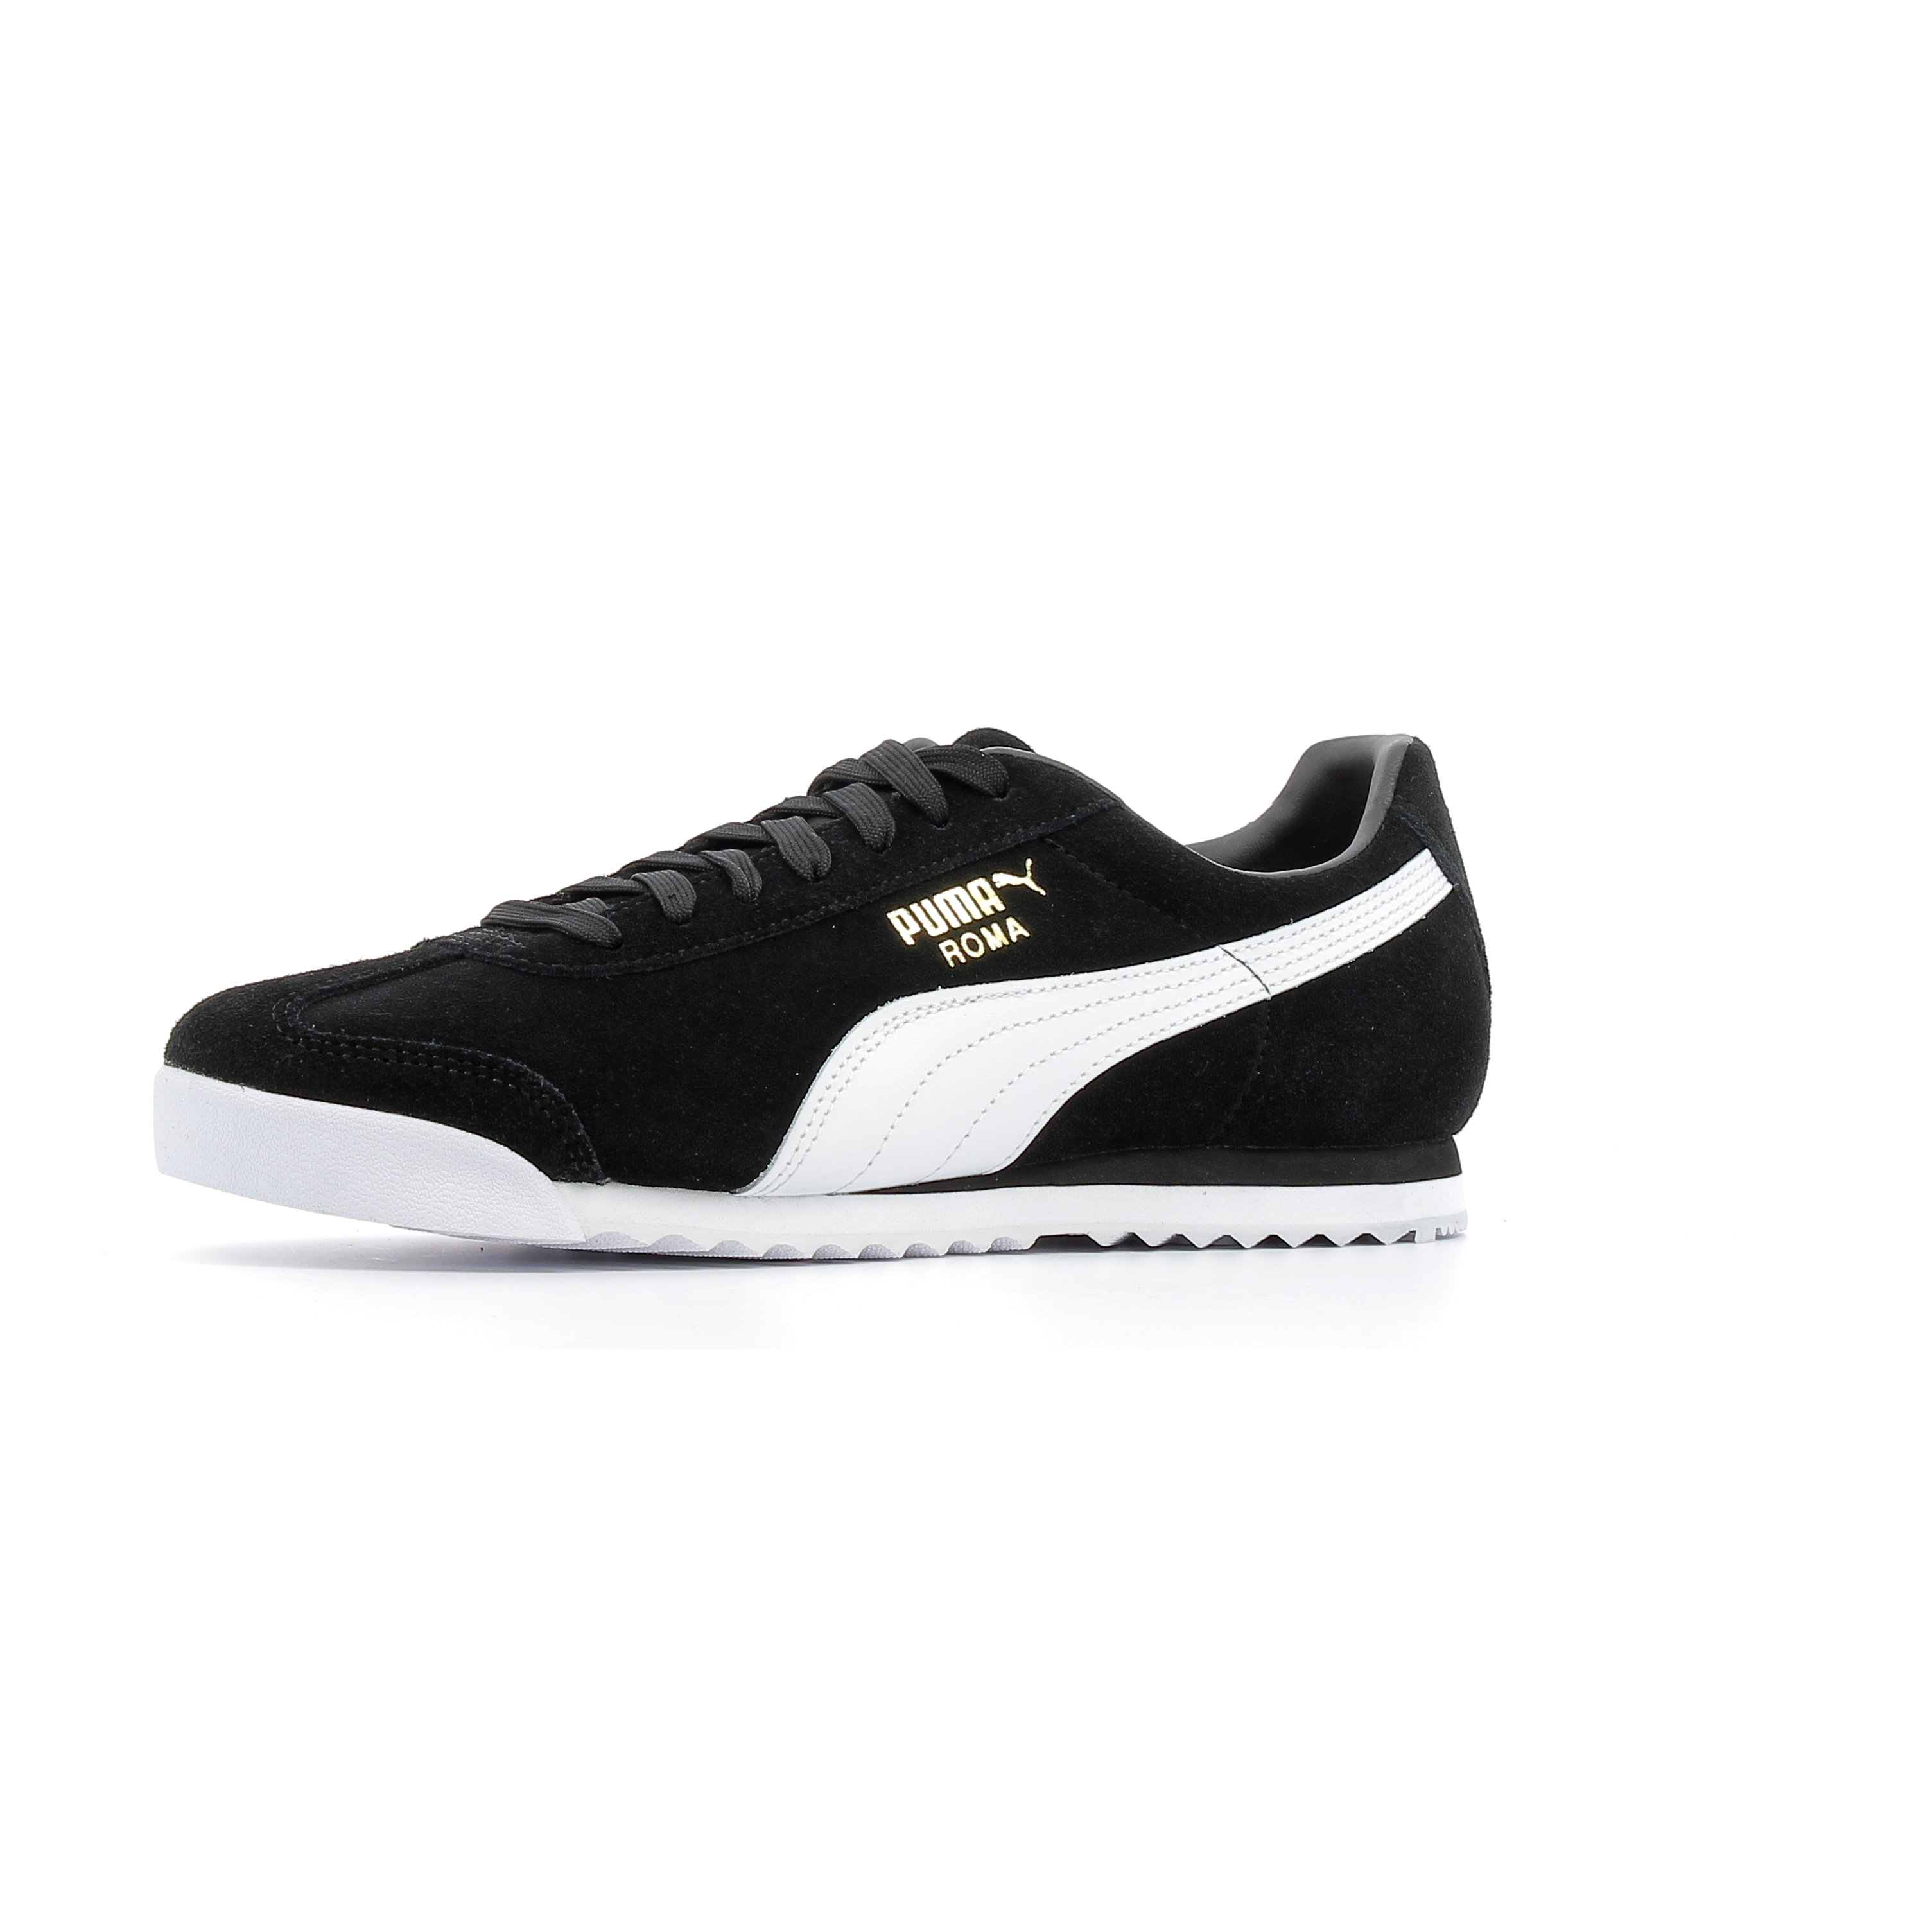 new arrival 03d84 0b056 Baskets basses Puma Roma Suede